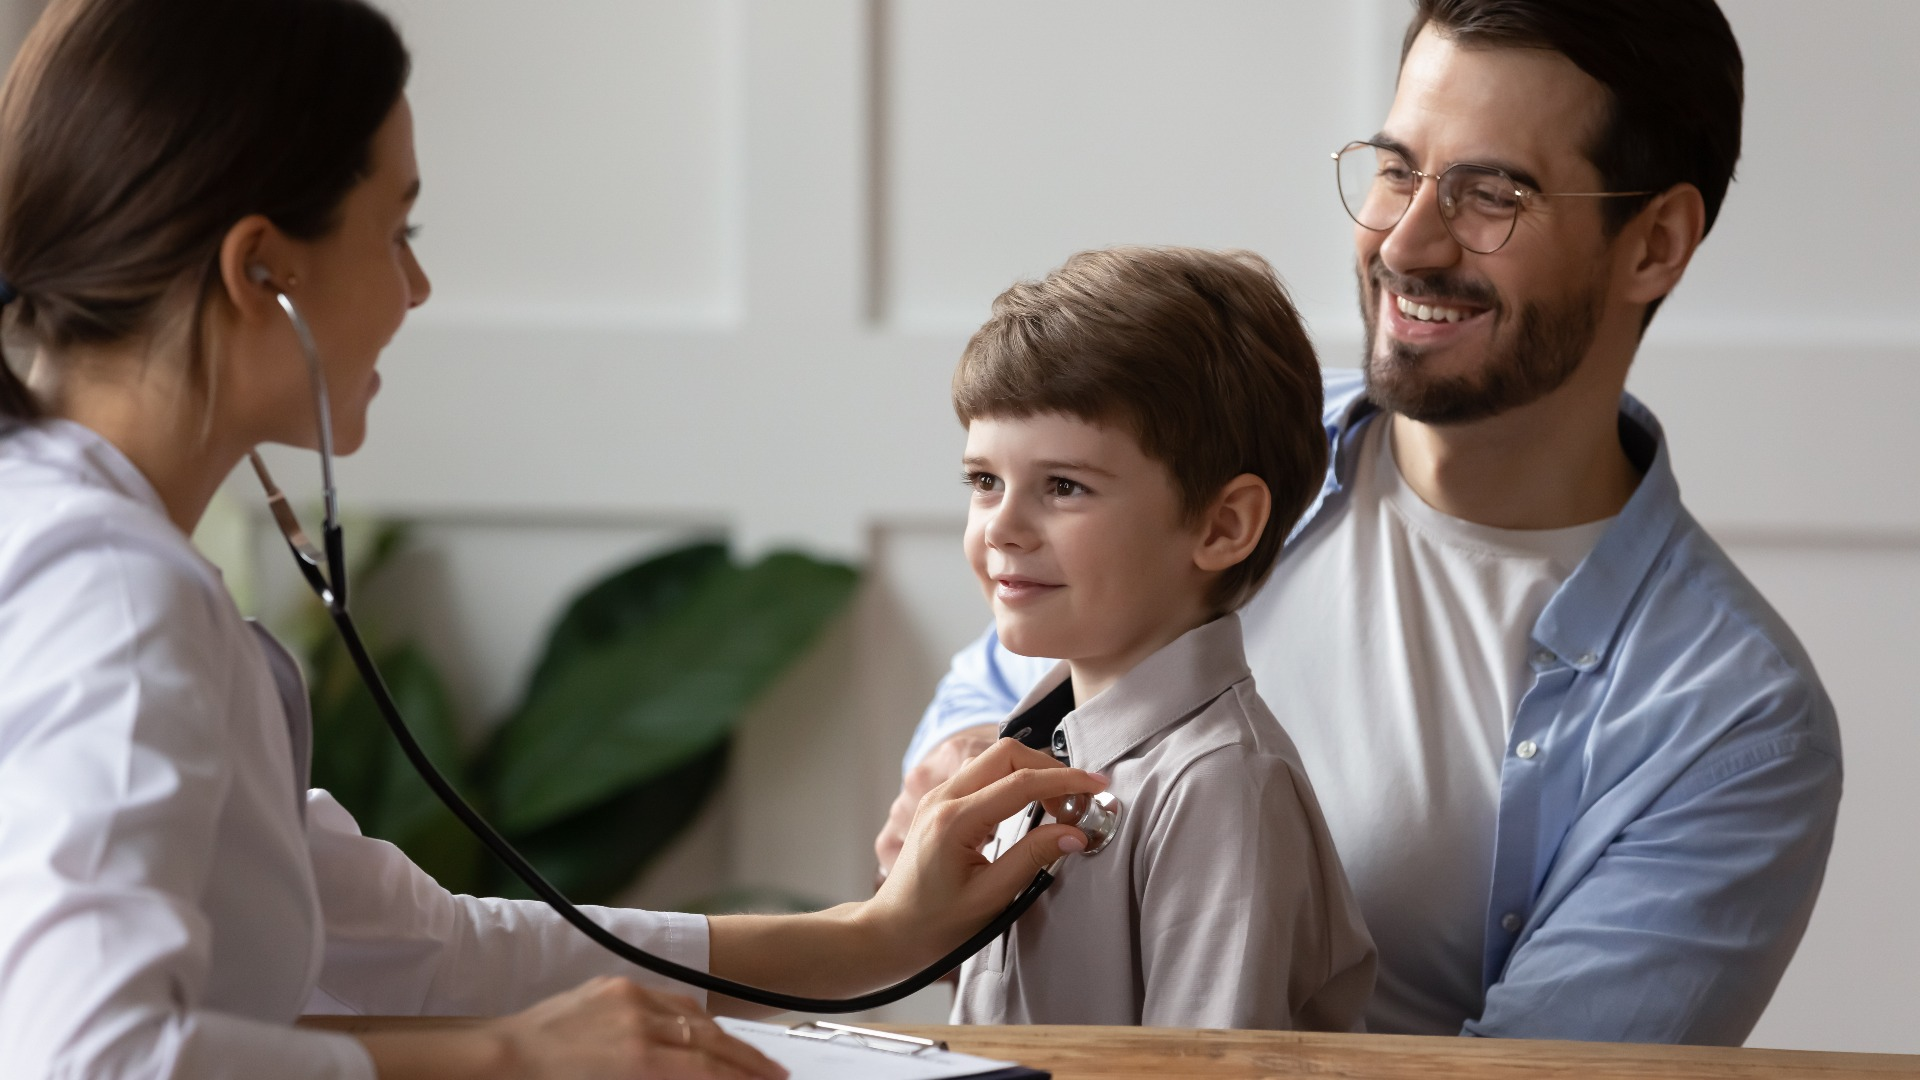 Young boy held by his dad as a Doctor examines him with her stethoscope